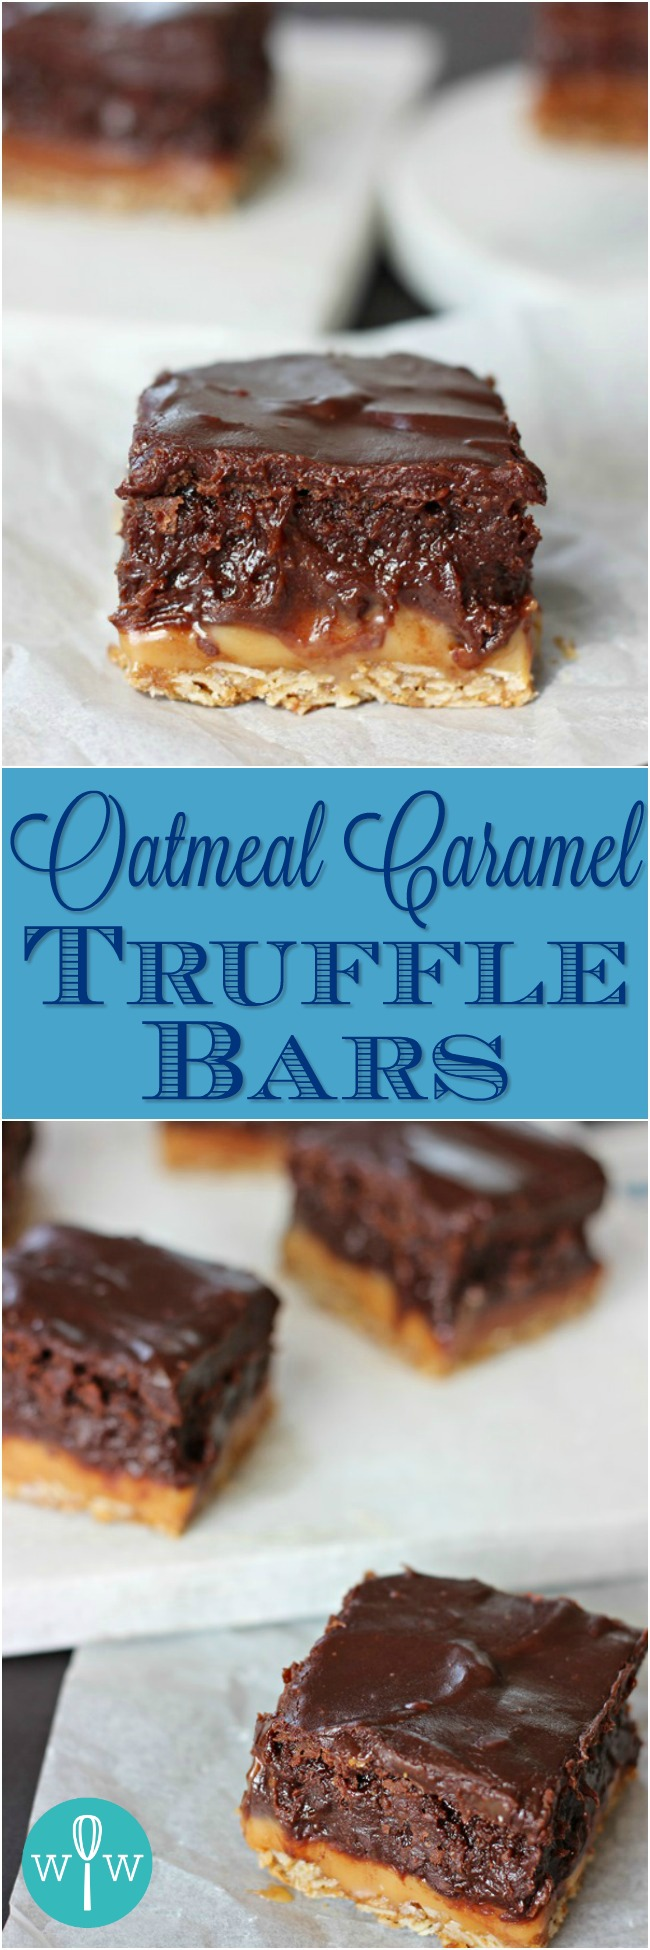 Oatmeal Caramel Truffle Bars – A rich and delicious dessert bar with gooey caramel and brownie layers sandwiched between an oatmeal crust and creamy chocolate ganache. | www.worthwhisking.com